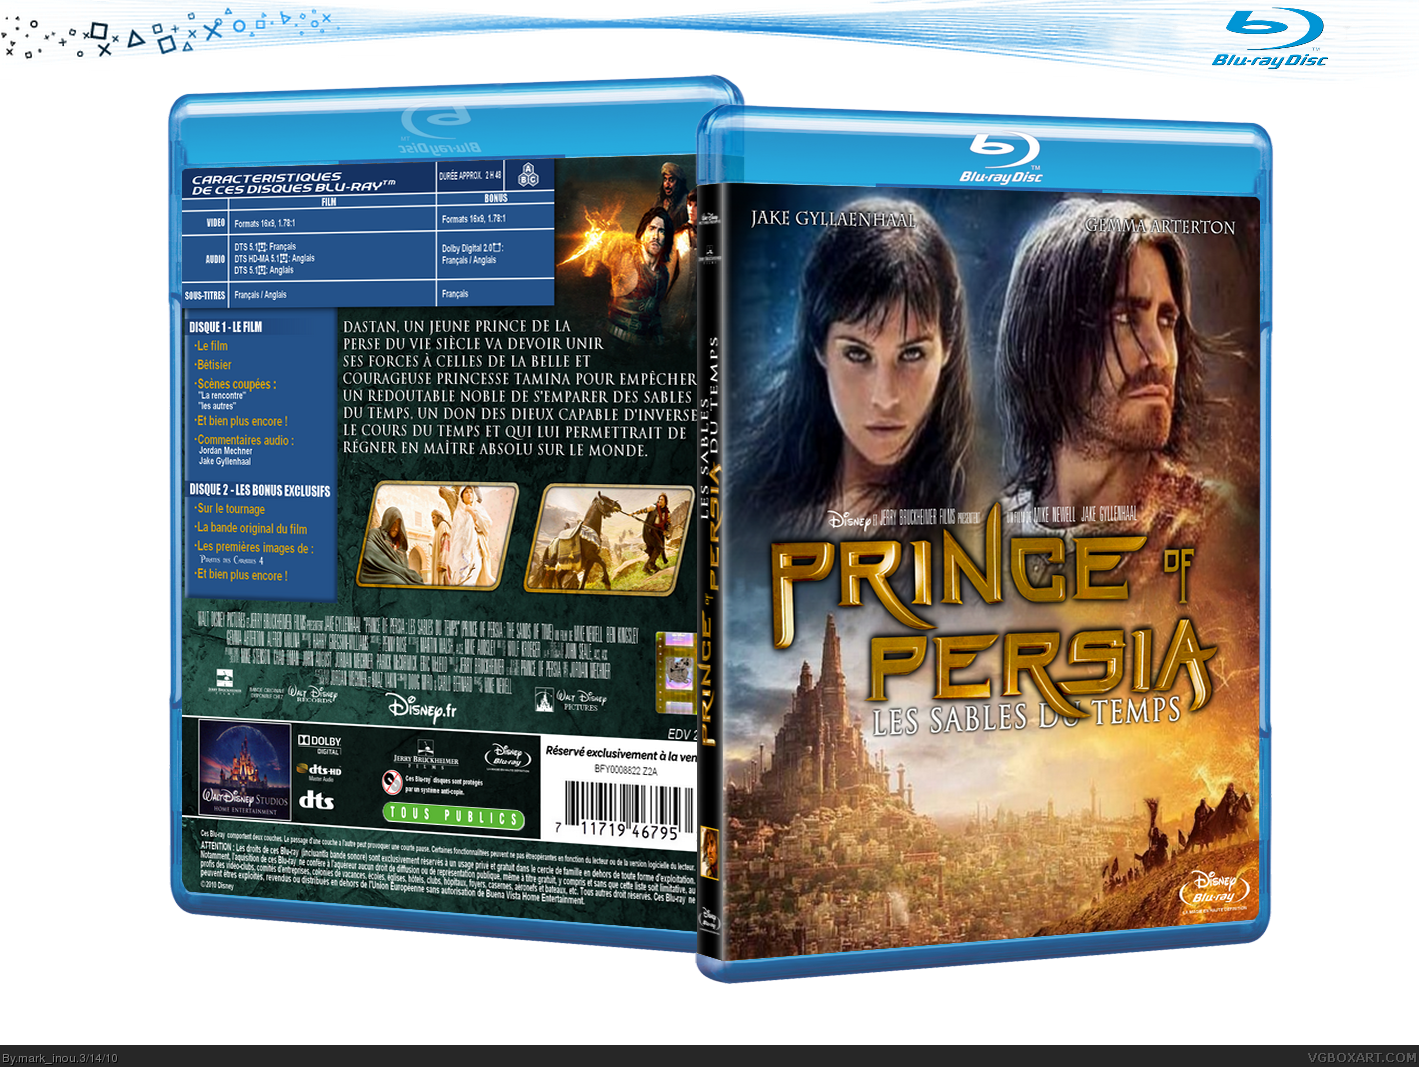 Prince of Persia: The Sands of Time box cover